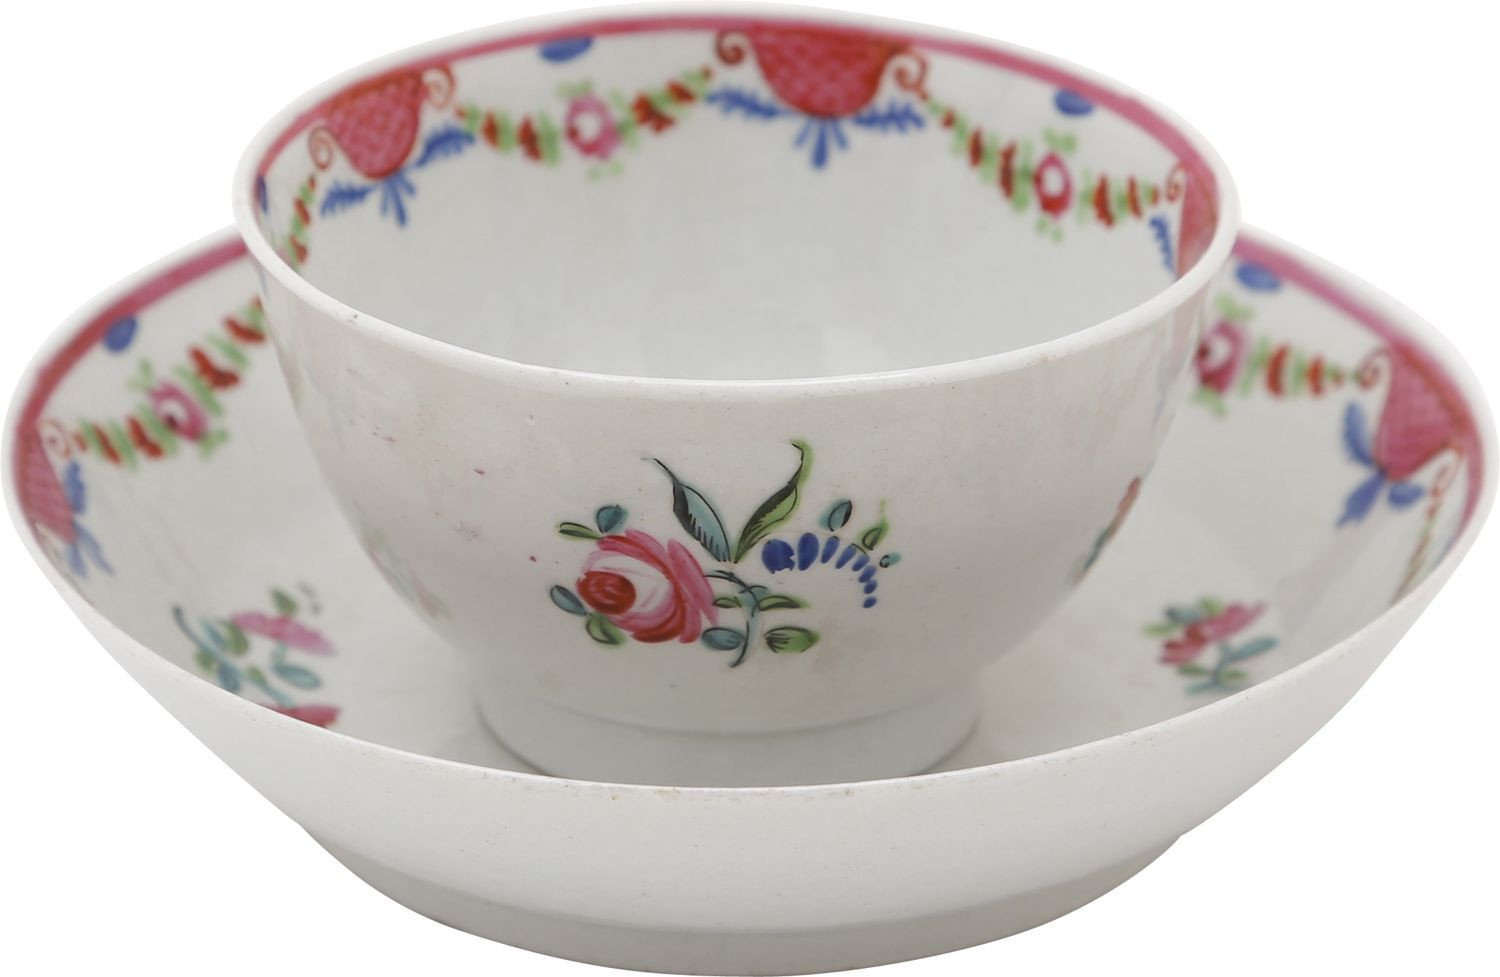 ENGLISH PORCELAIN TEA BOWL AND UNDER BOWL - Fagan Arms